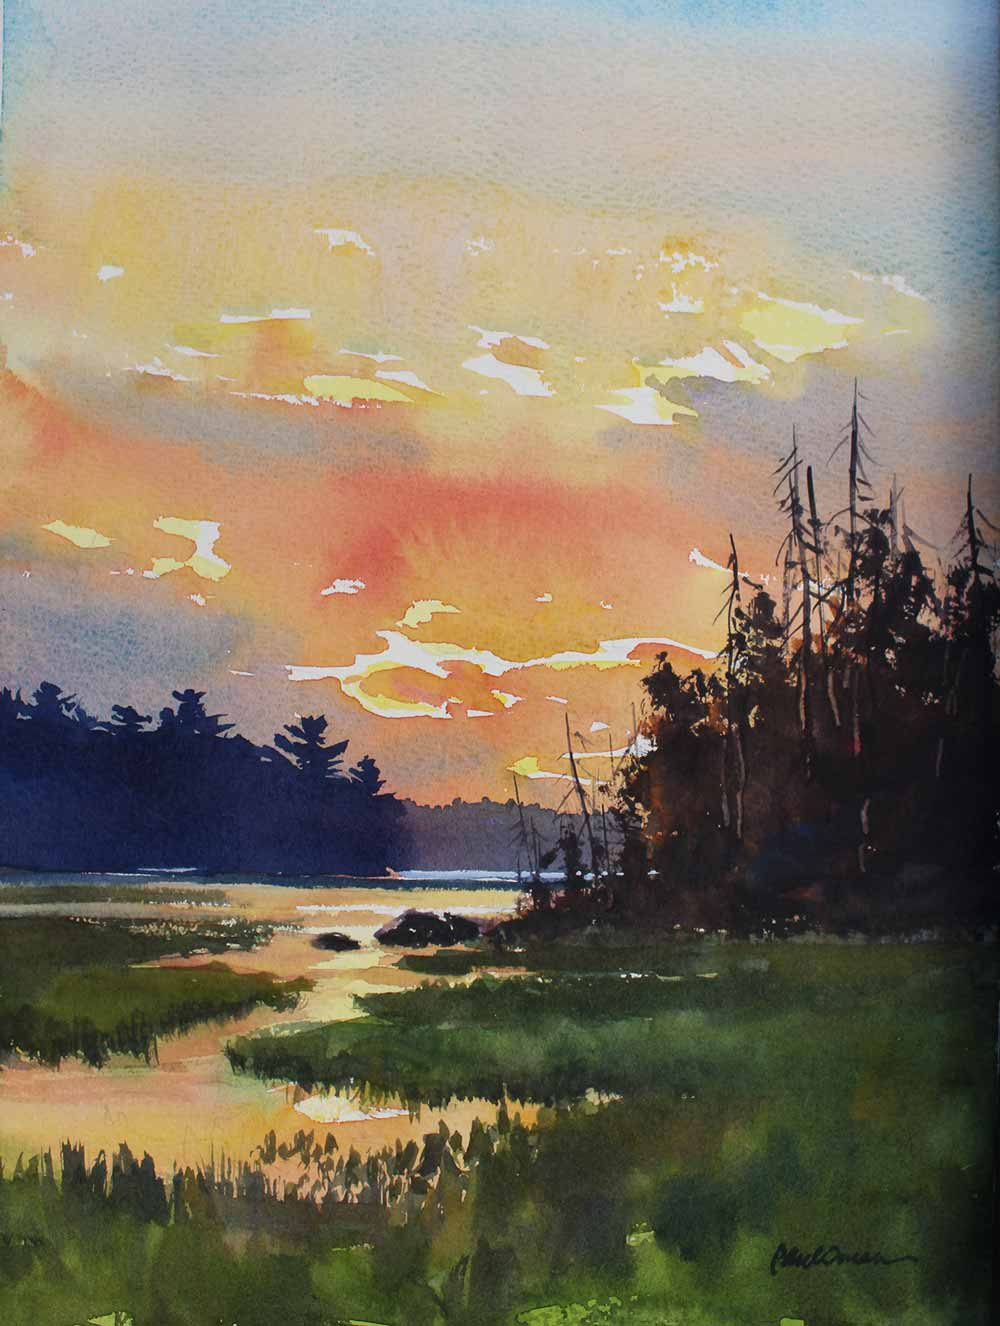 Wild Rice On Upper Pauness - original watercolor by Paul Oman